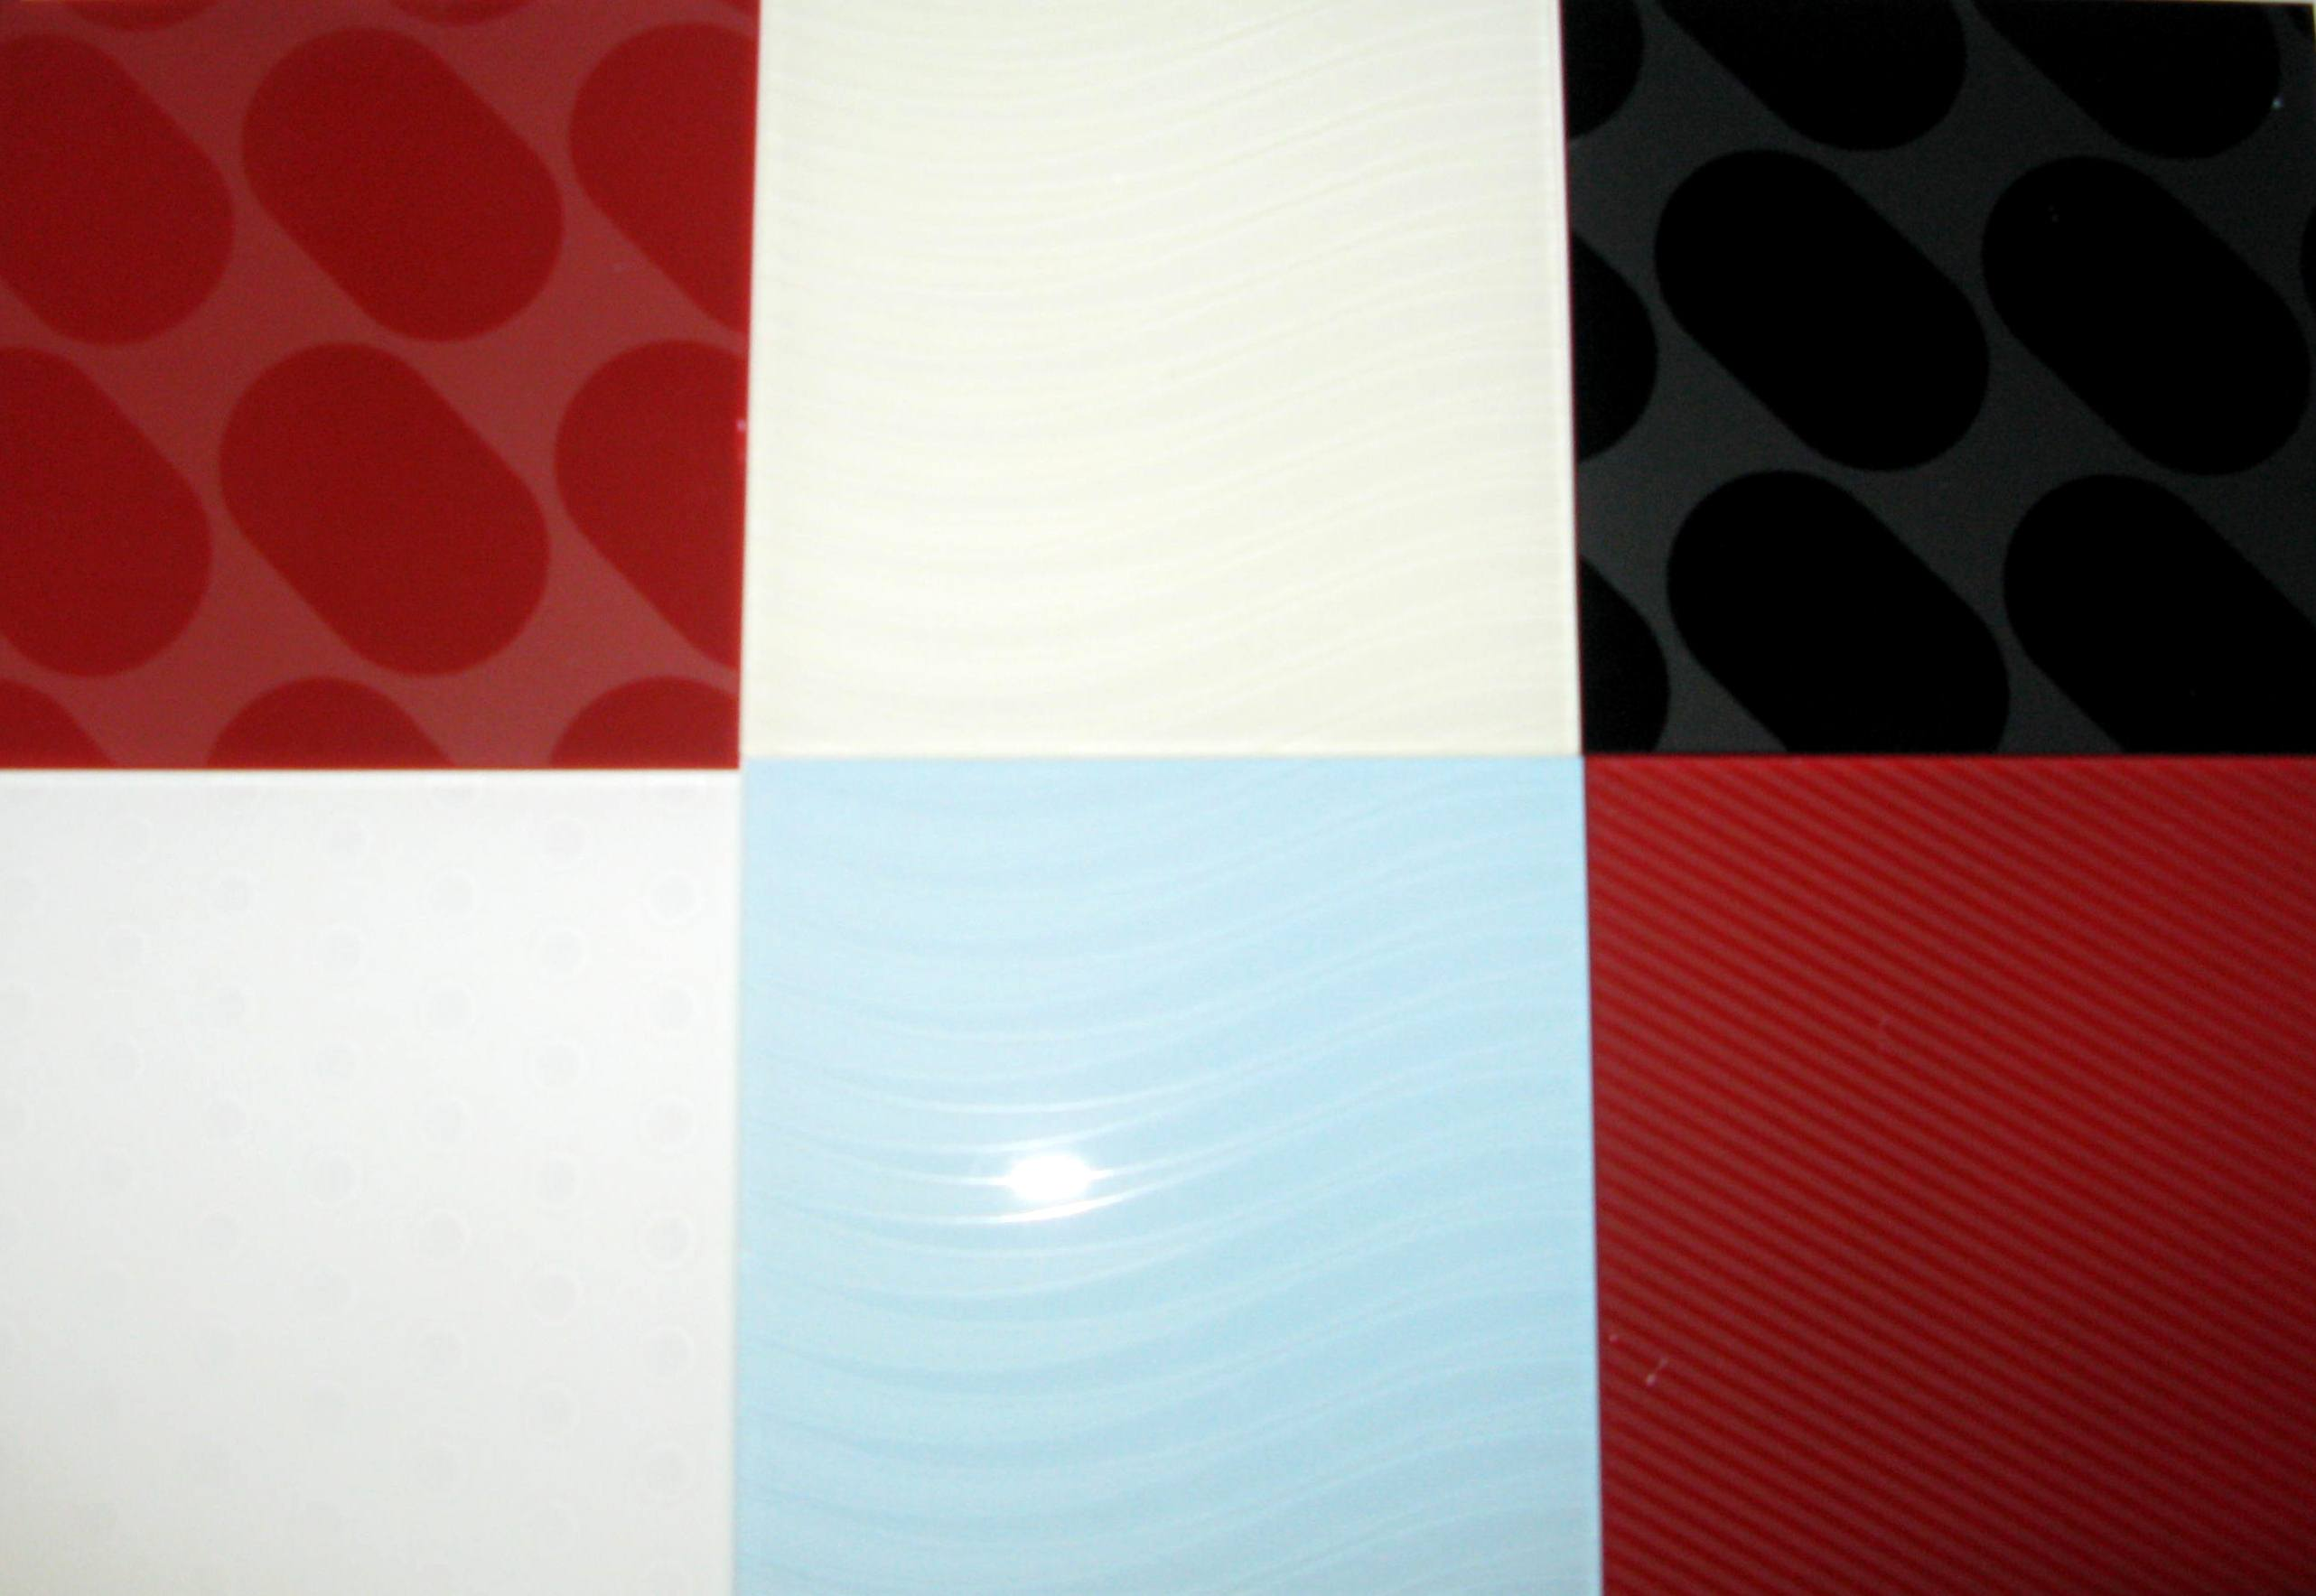 six patterned tiled glass squares